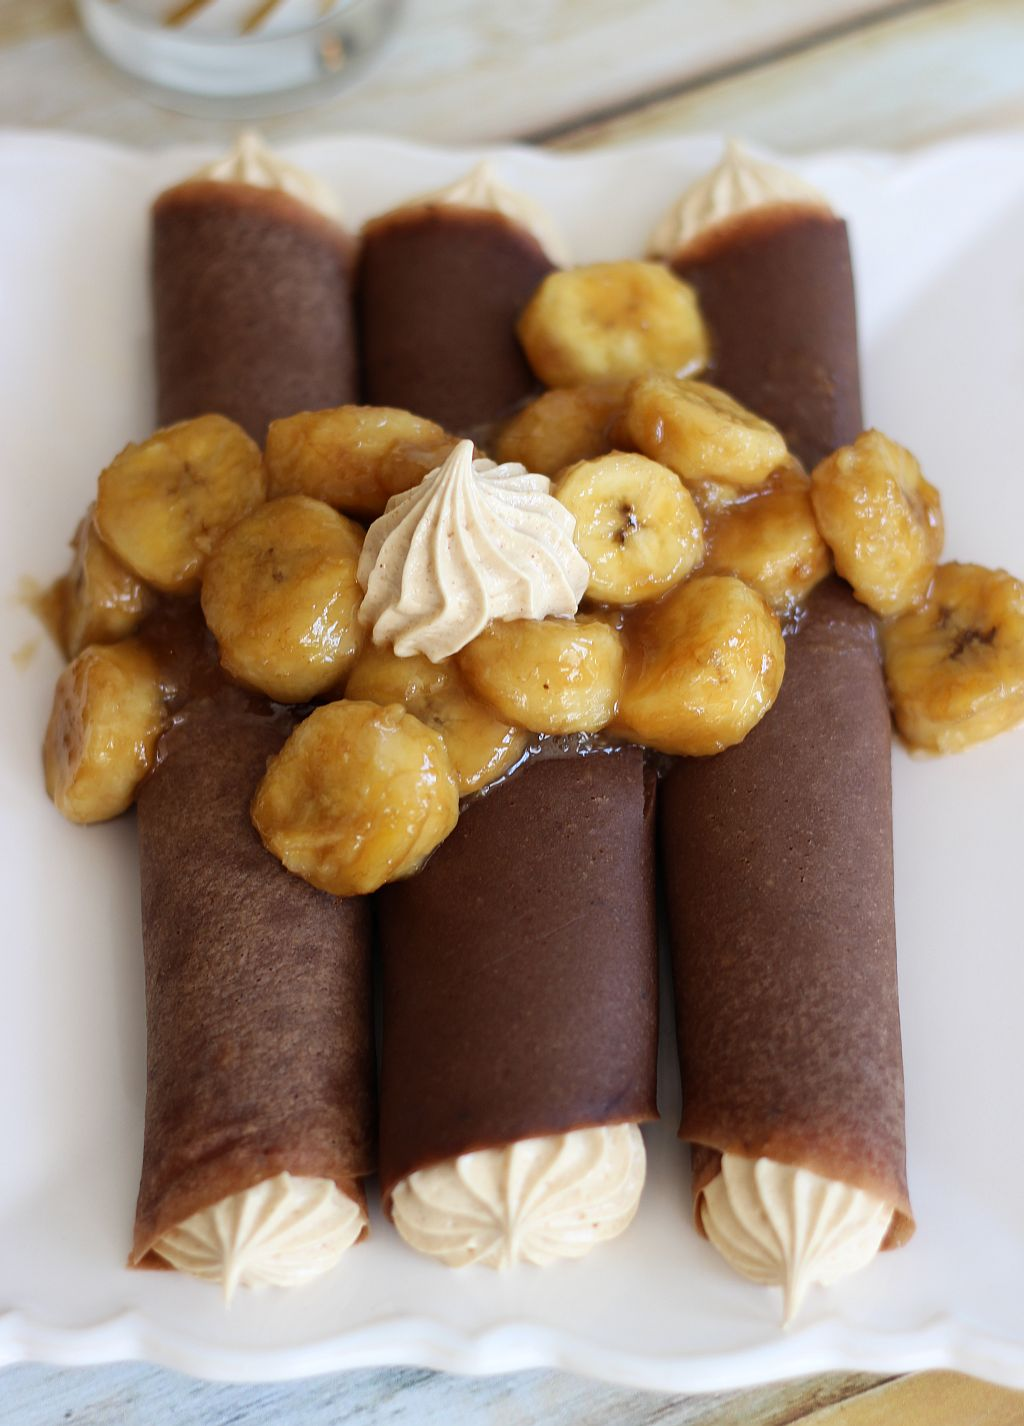 chocolate crepes with a marshmallow and peanut butter filling and